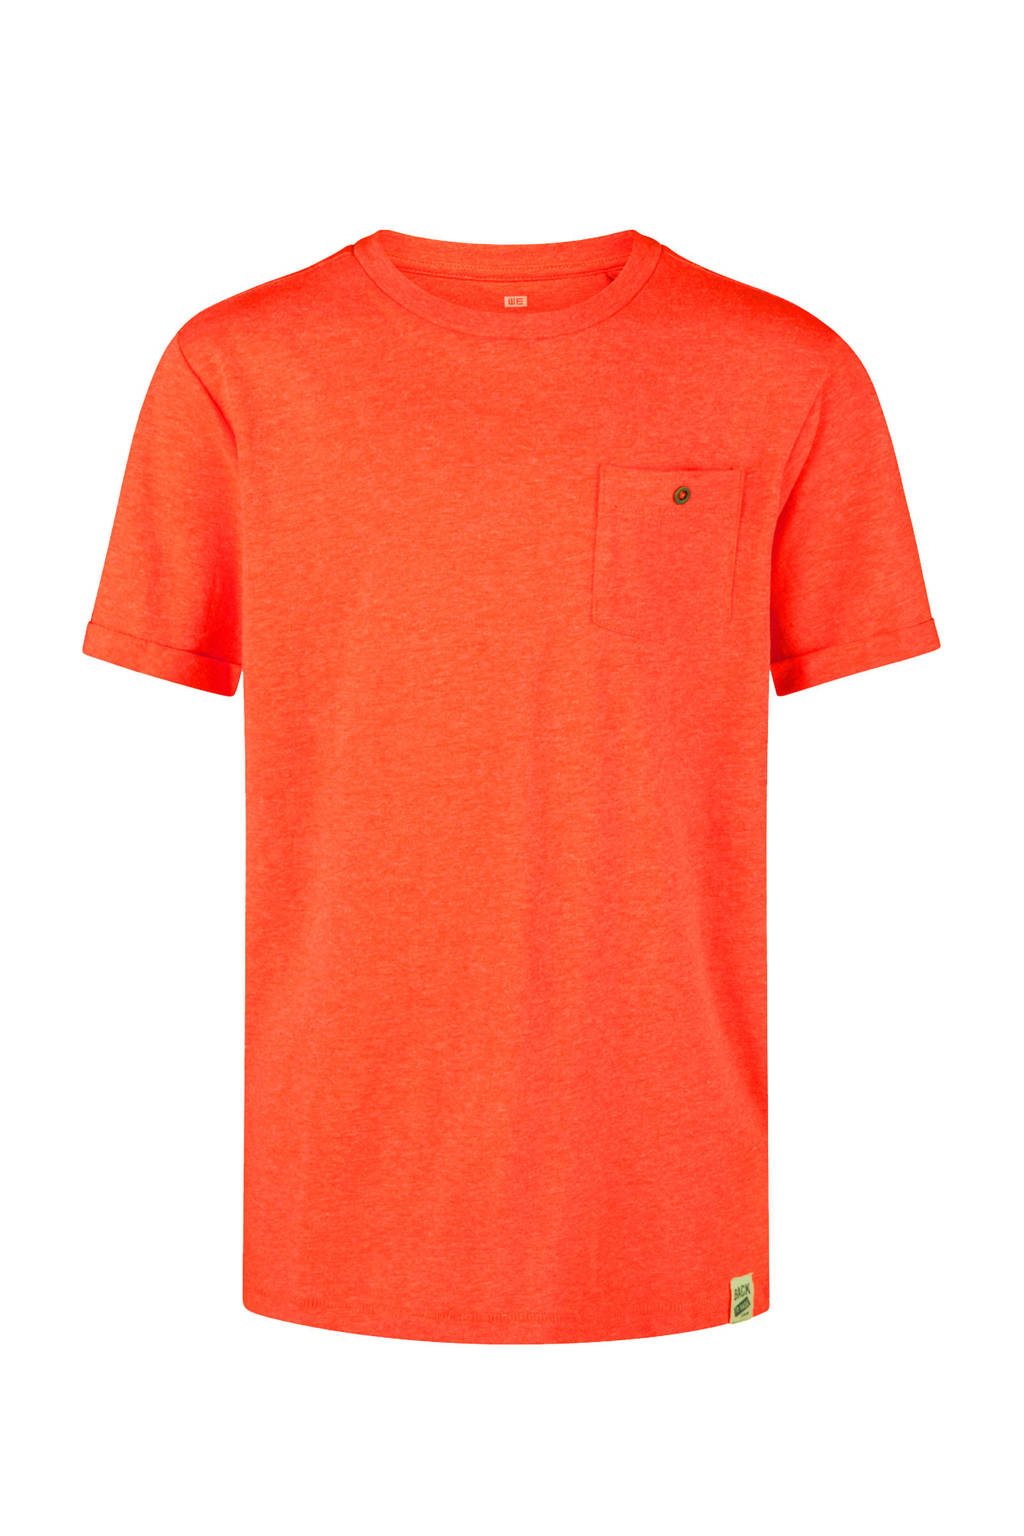 WE Fashion T-shirt oranje, Oranje